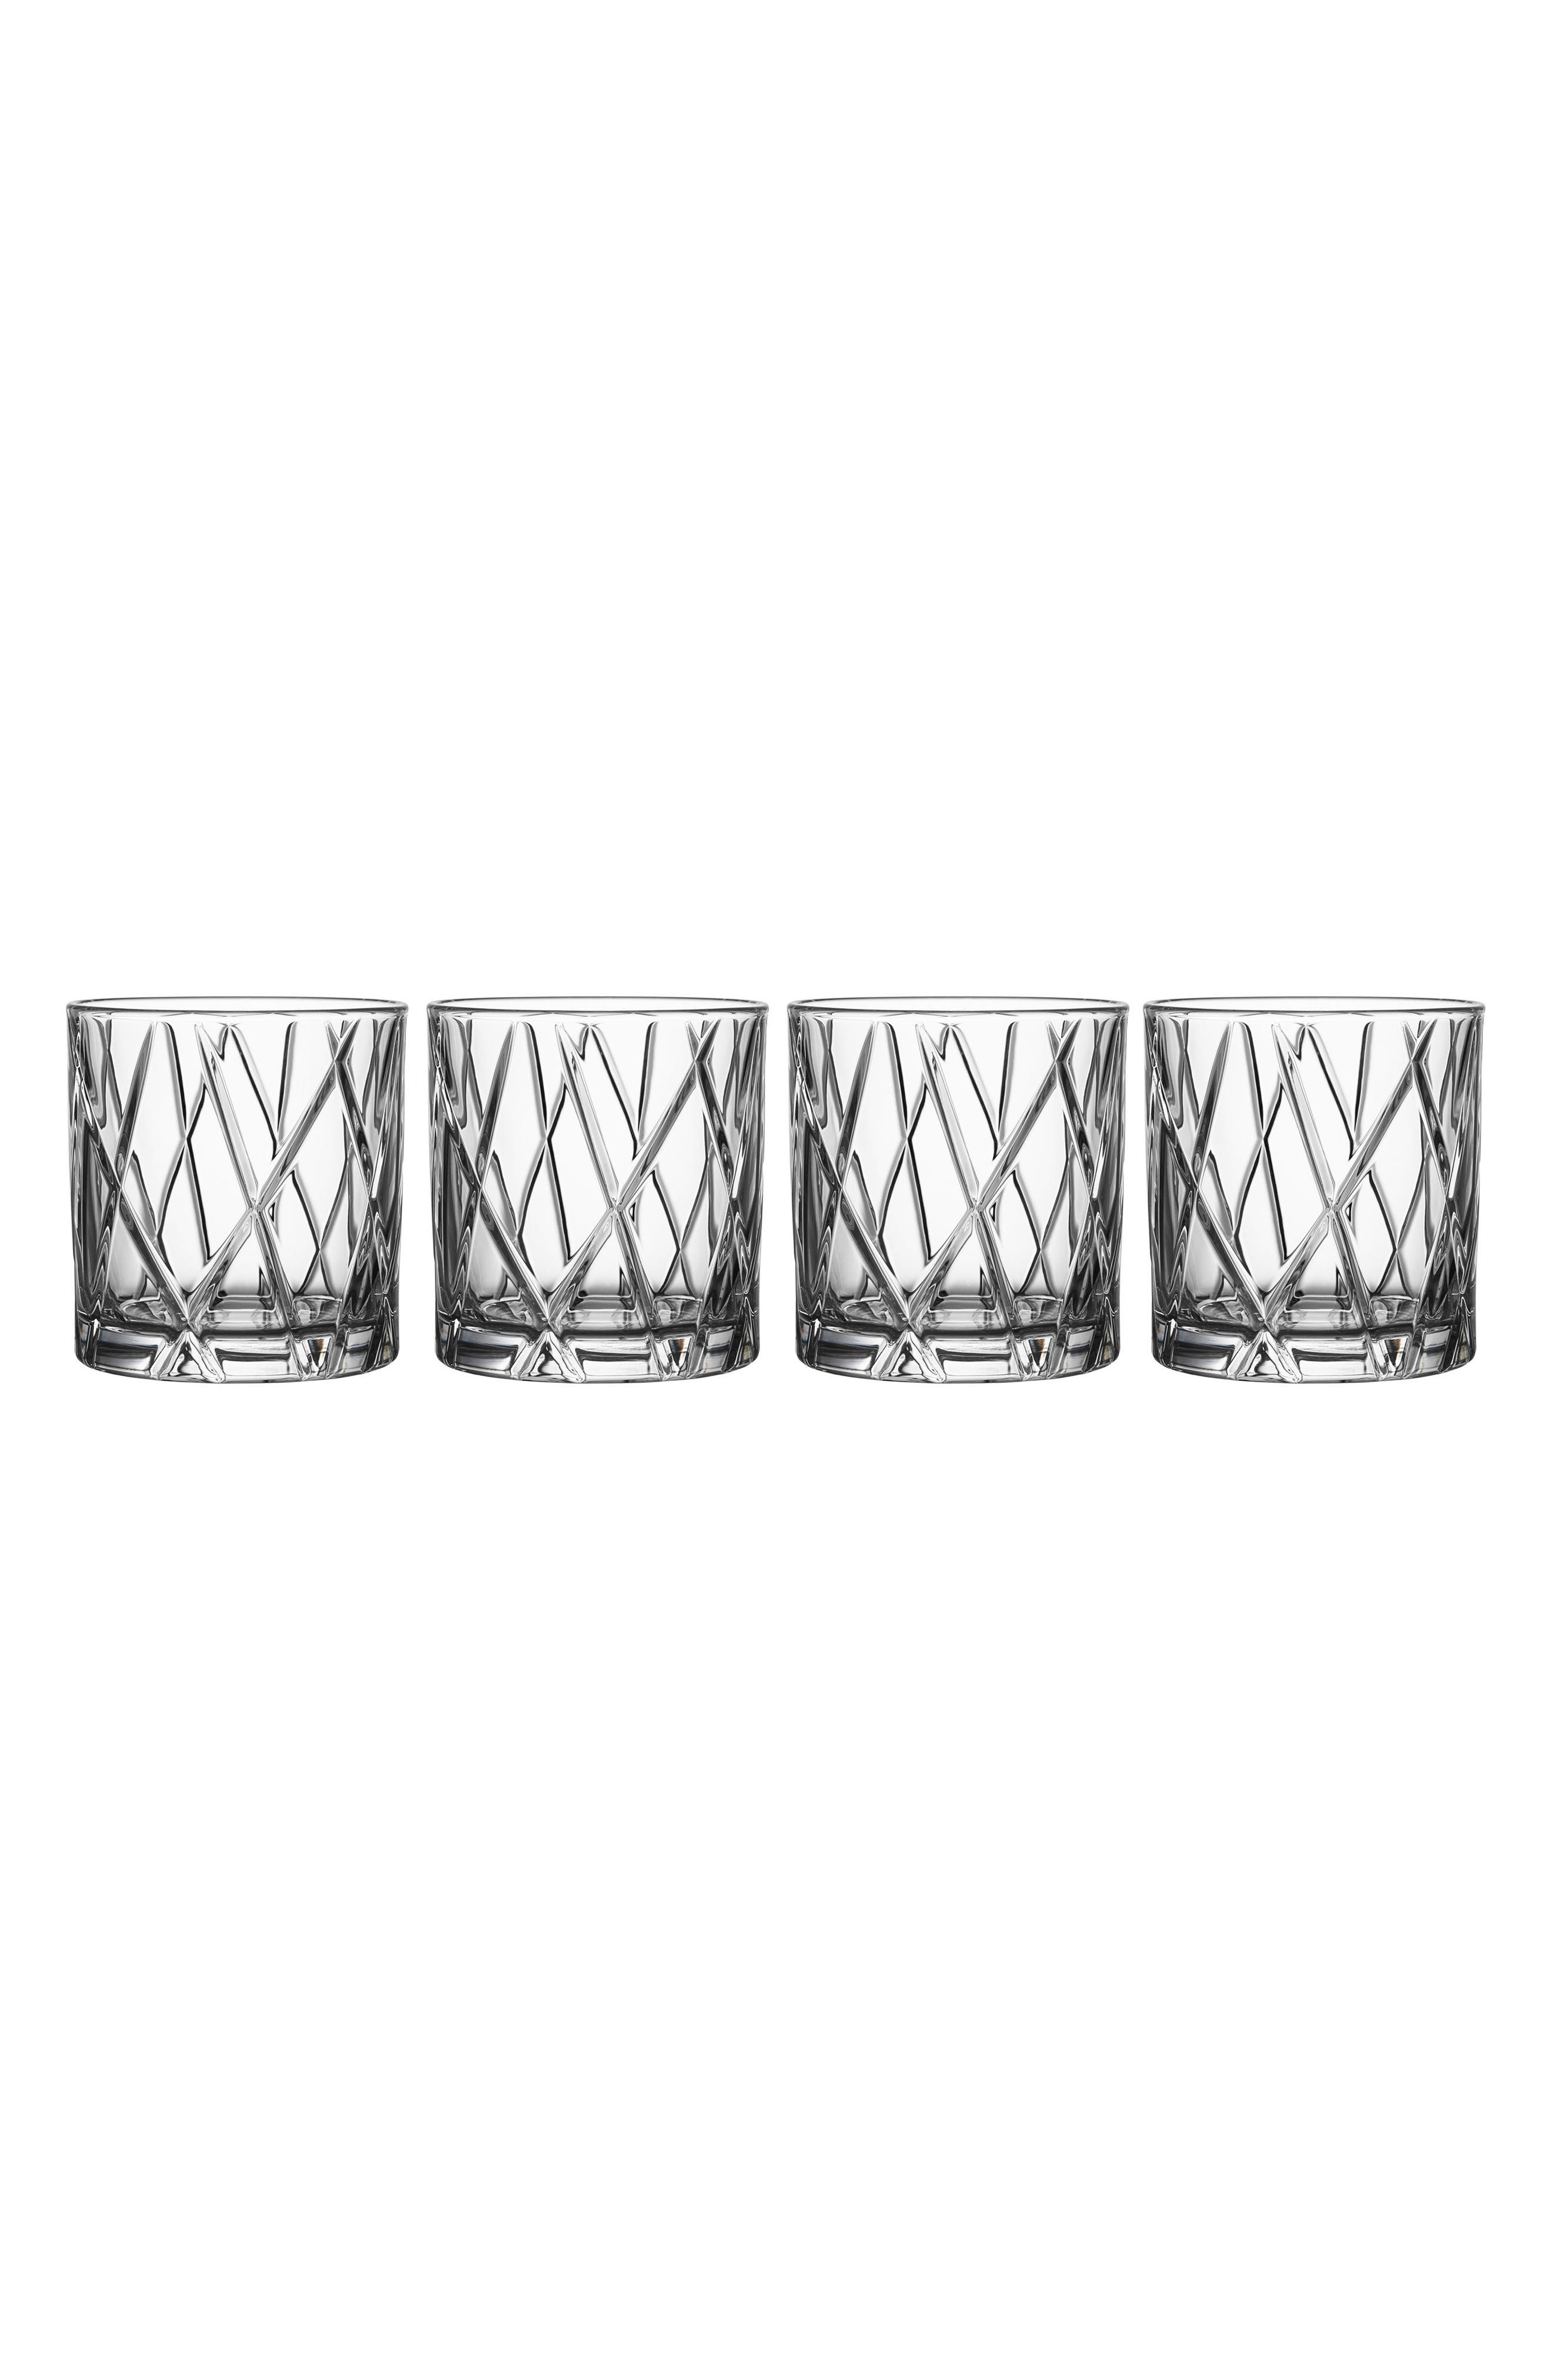 Alternate Image 1 Selected - Orrefors City Set of 4 Crystal Double Old Fashioned Glasses